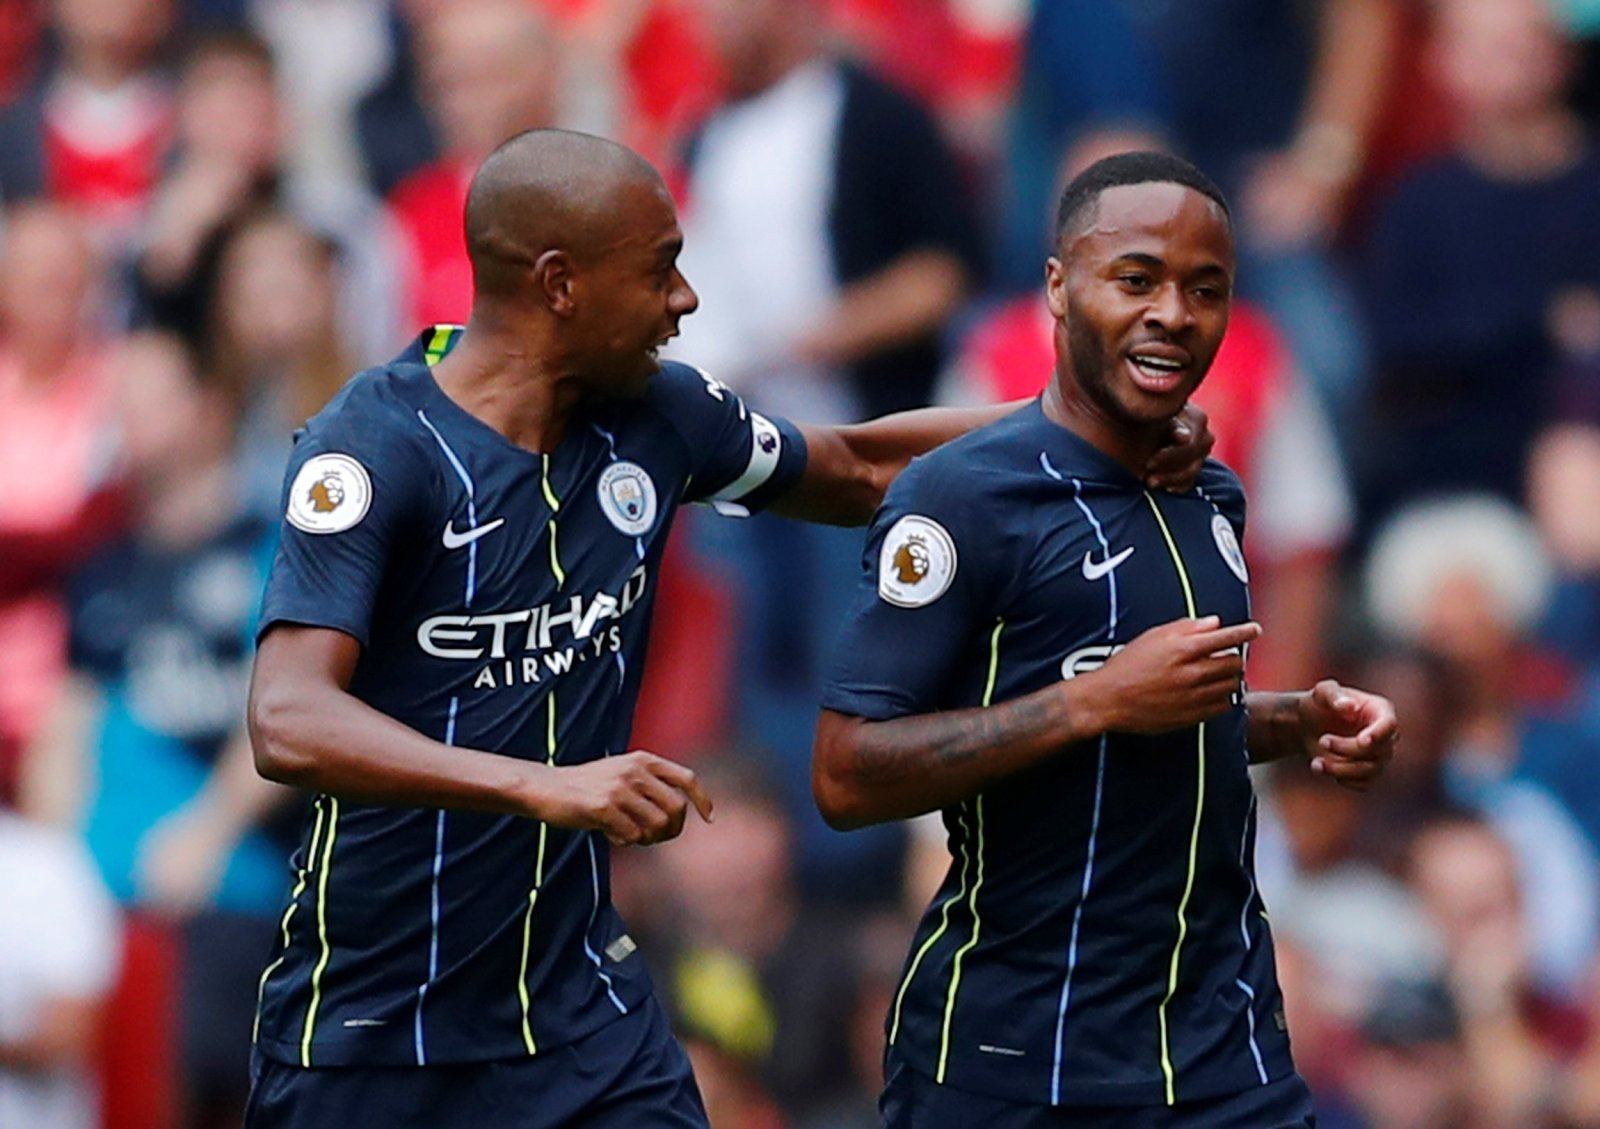 Man City fans are wrong to call for Raheem Sterling's departure